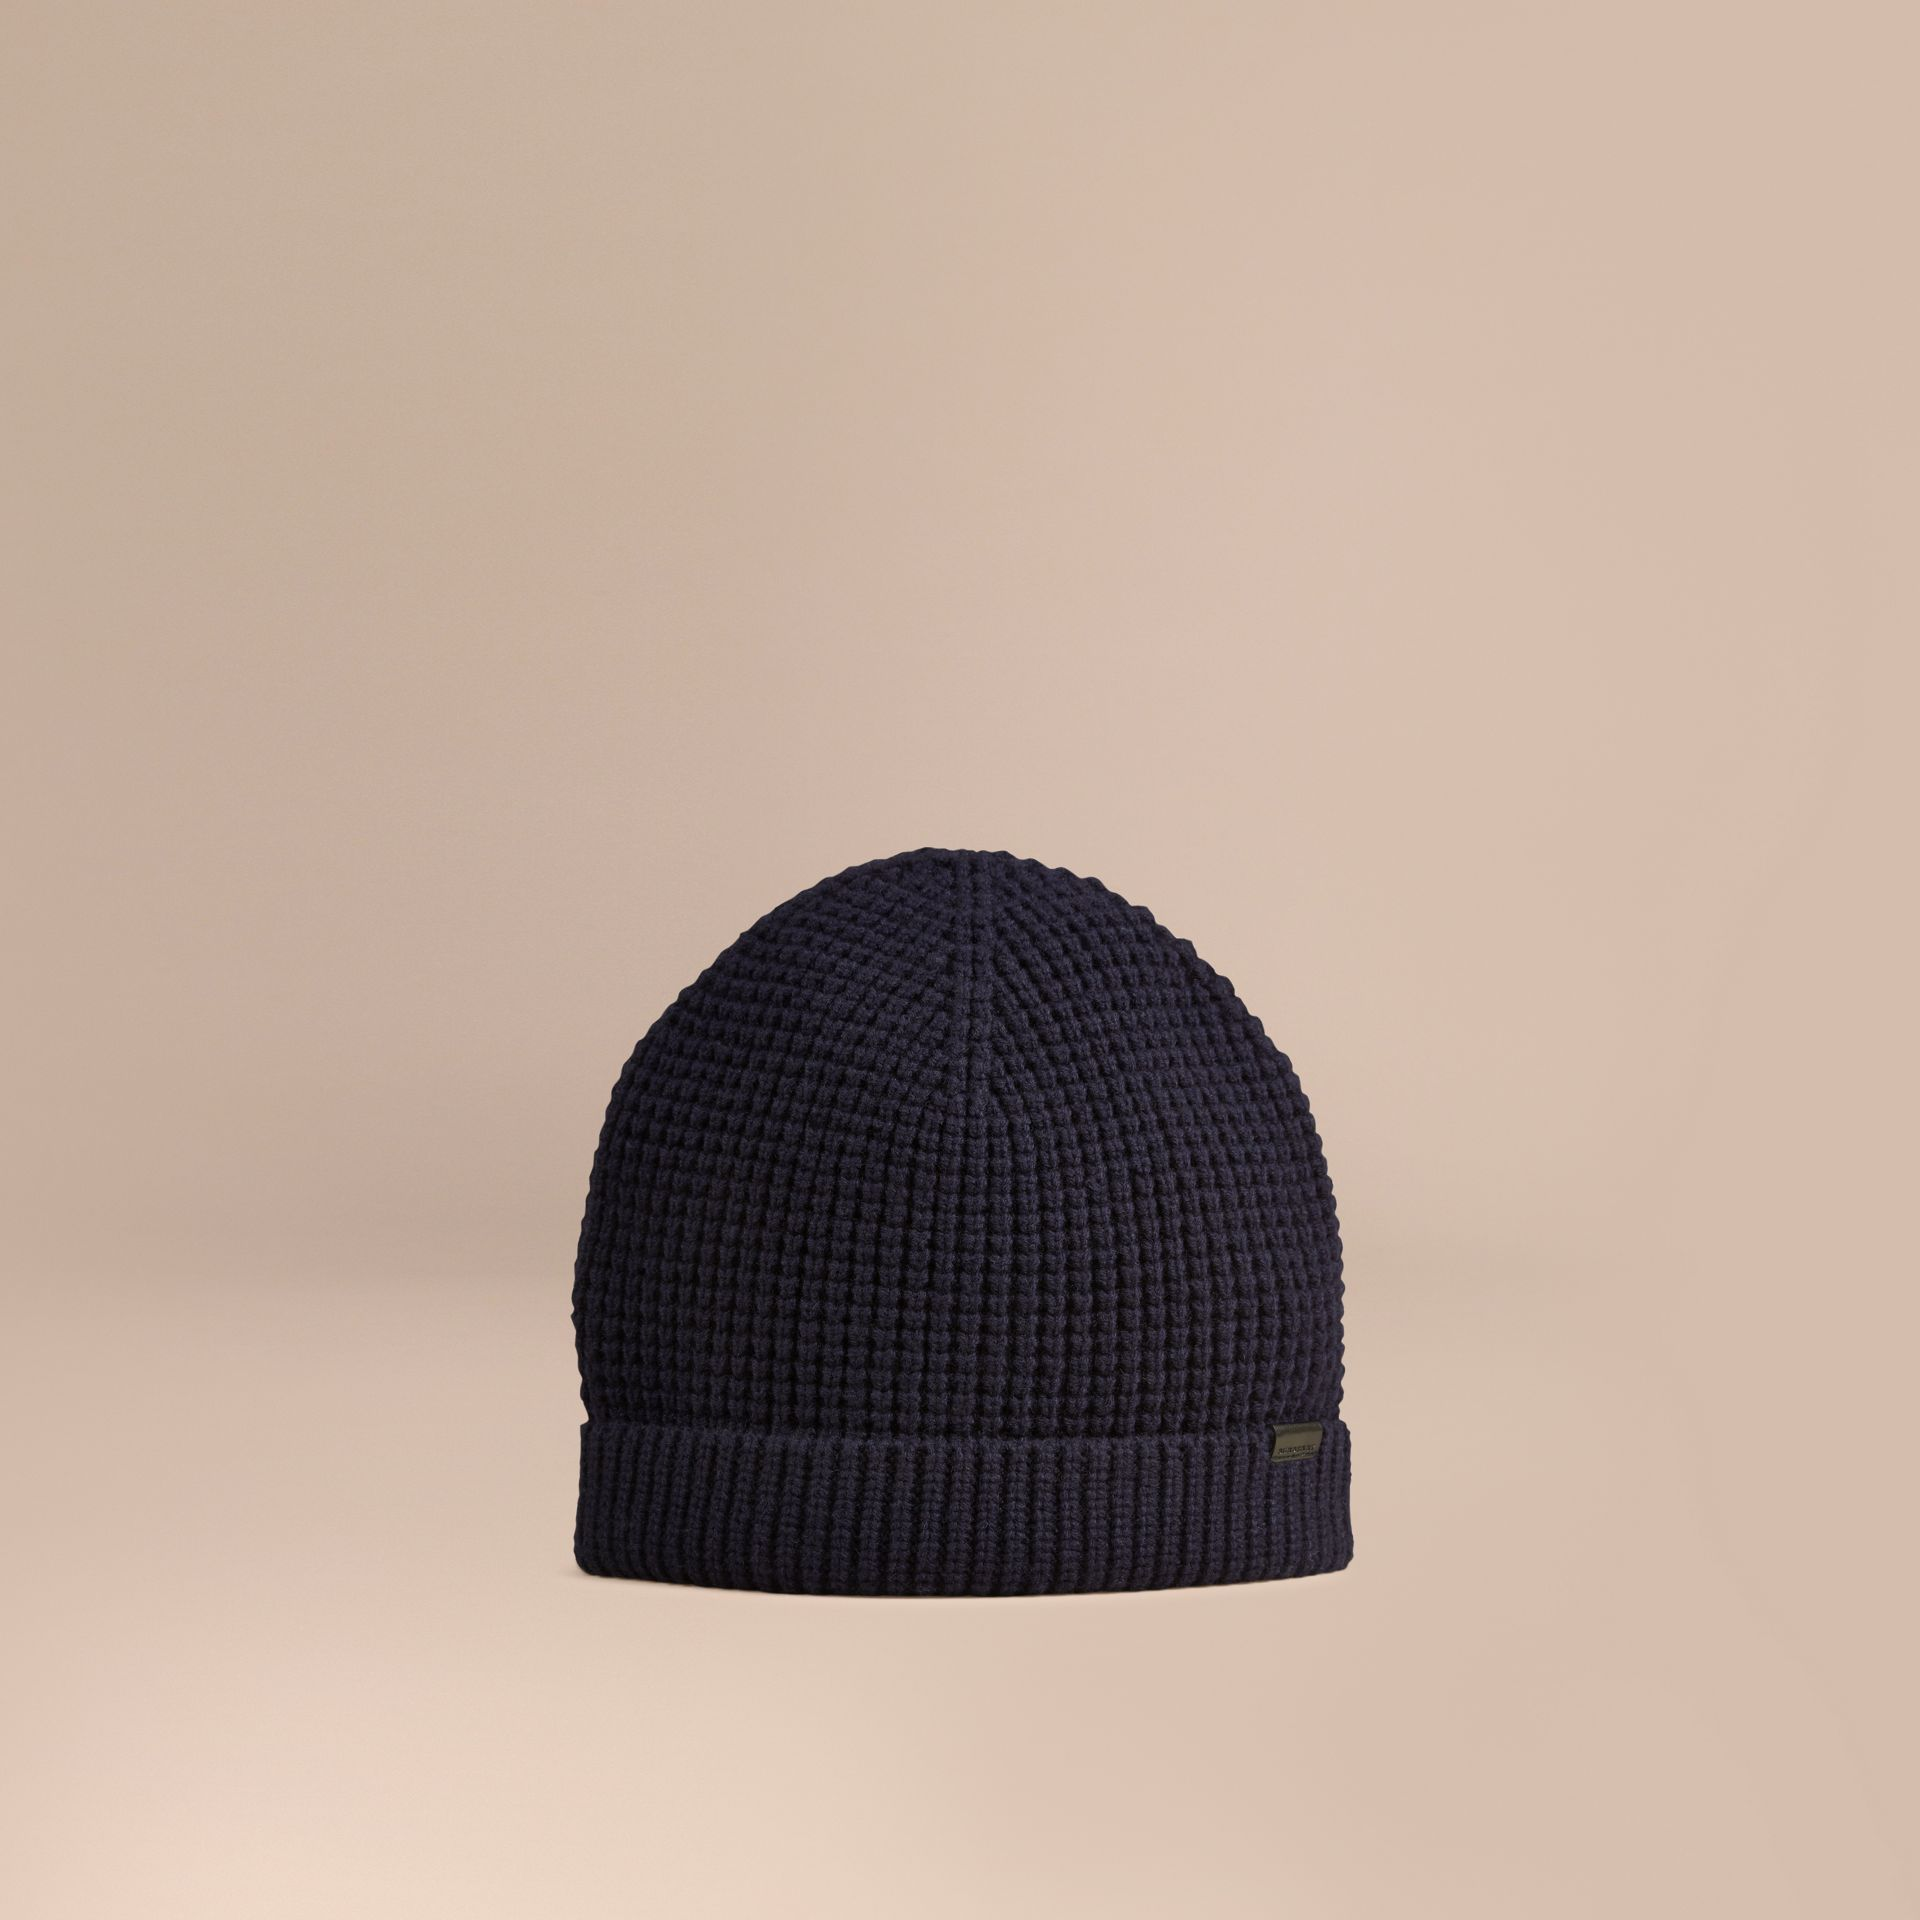 Cashmere Blend Waffle Knit Beanie in Dark Navy - Men | Burberry - gallery image 1